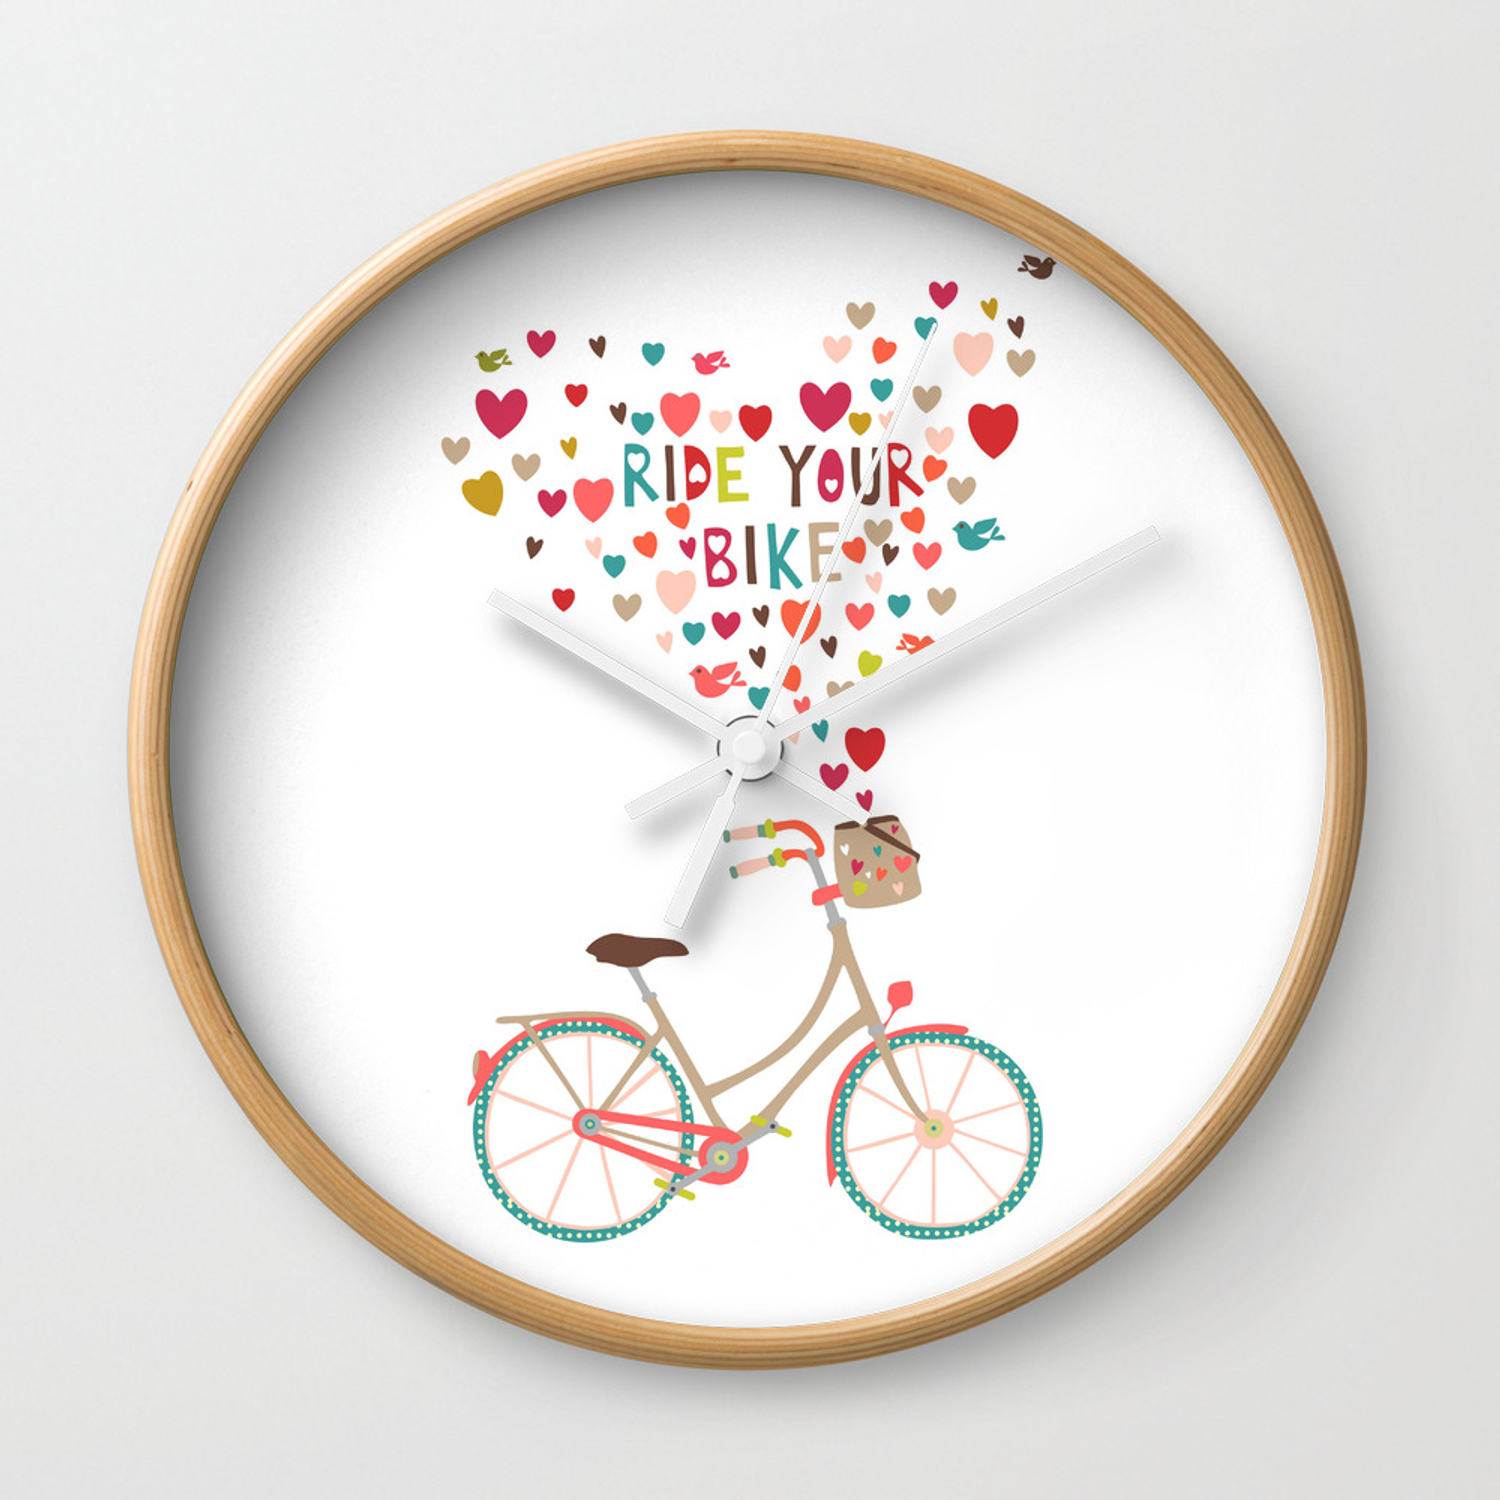 Ride Your Bike Bicycle Art Print Home Decor Living Room In Pastel Colors Hearts Modern Wall Graphic Wall Clock By Lubo Society6